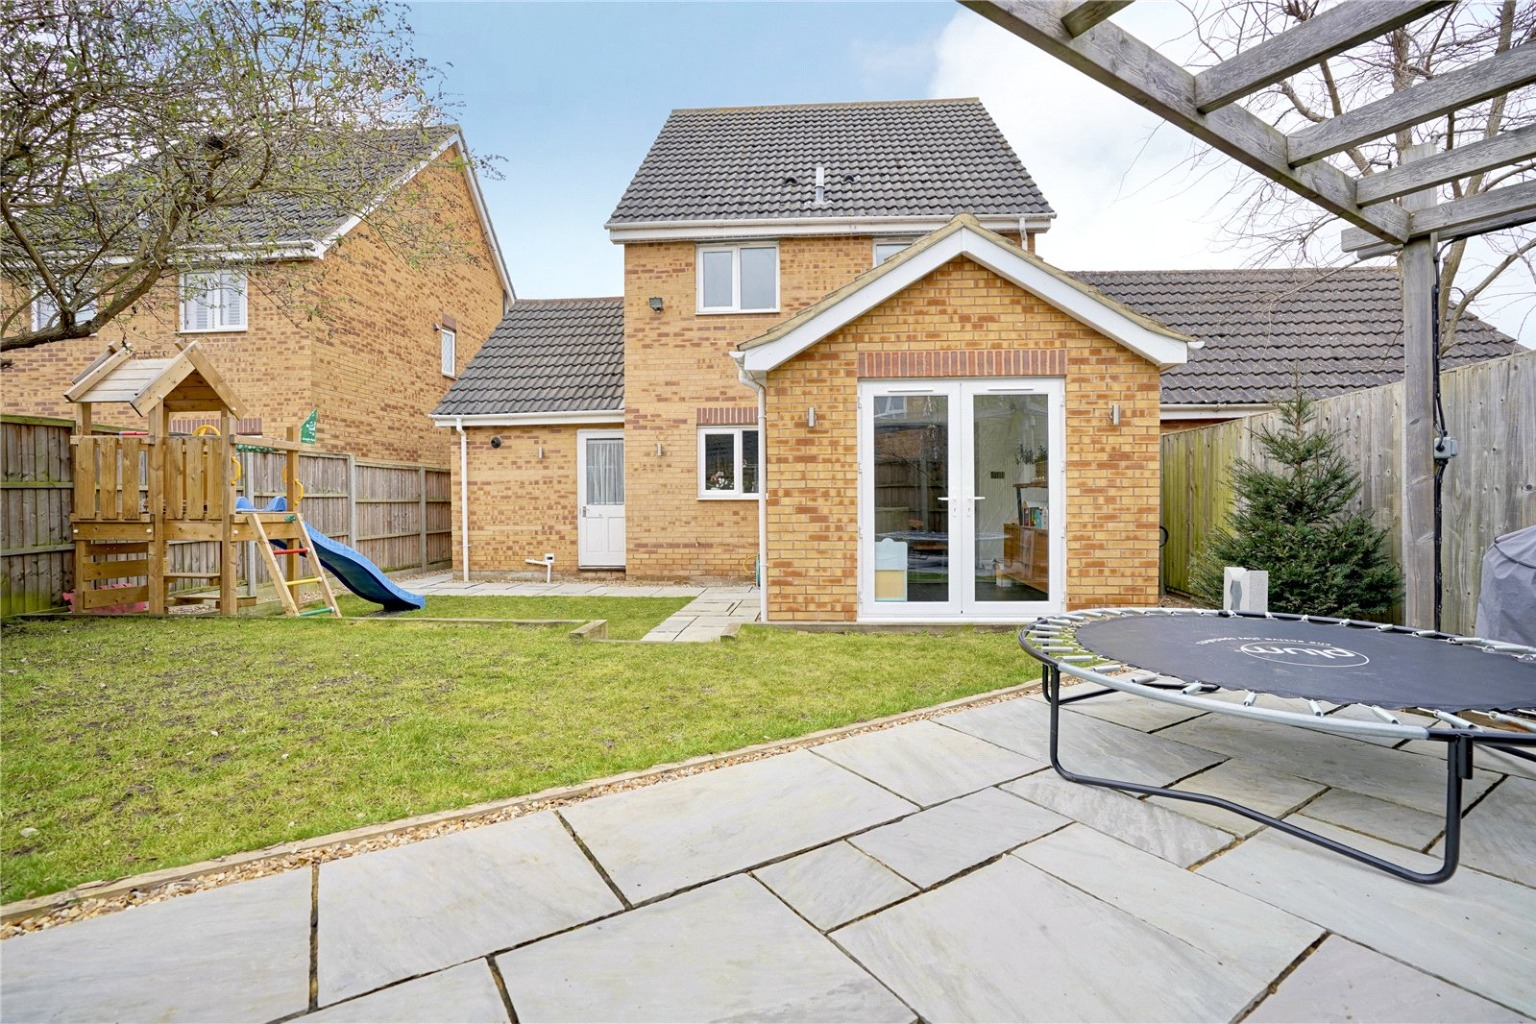 3 bed detached house for sale in Chamberlain Way, St. Neots  - Property Image 12